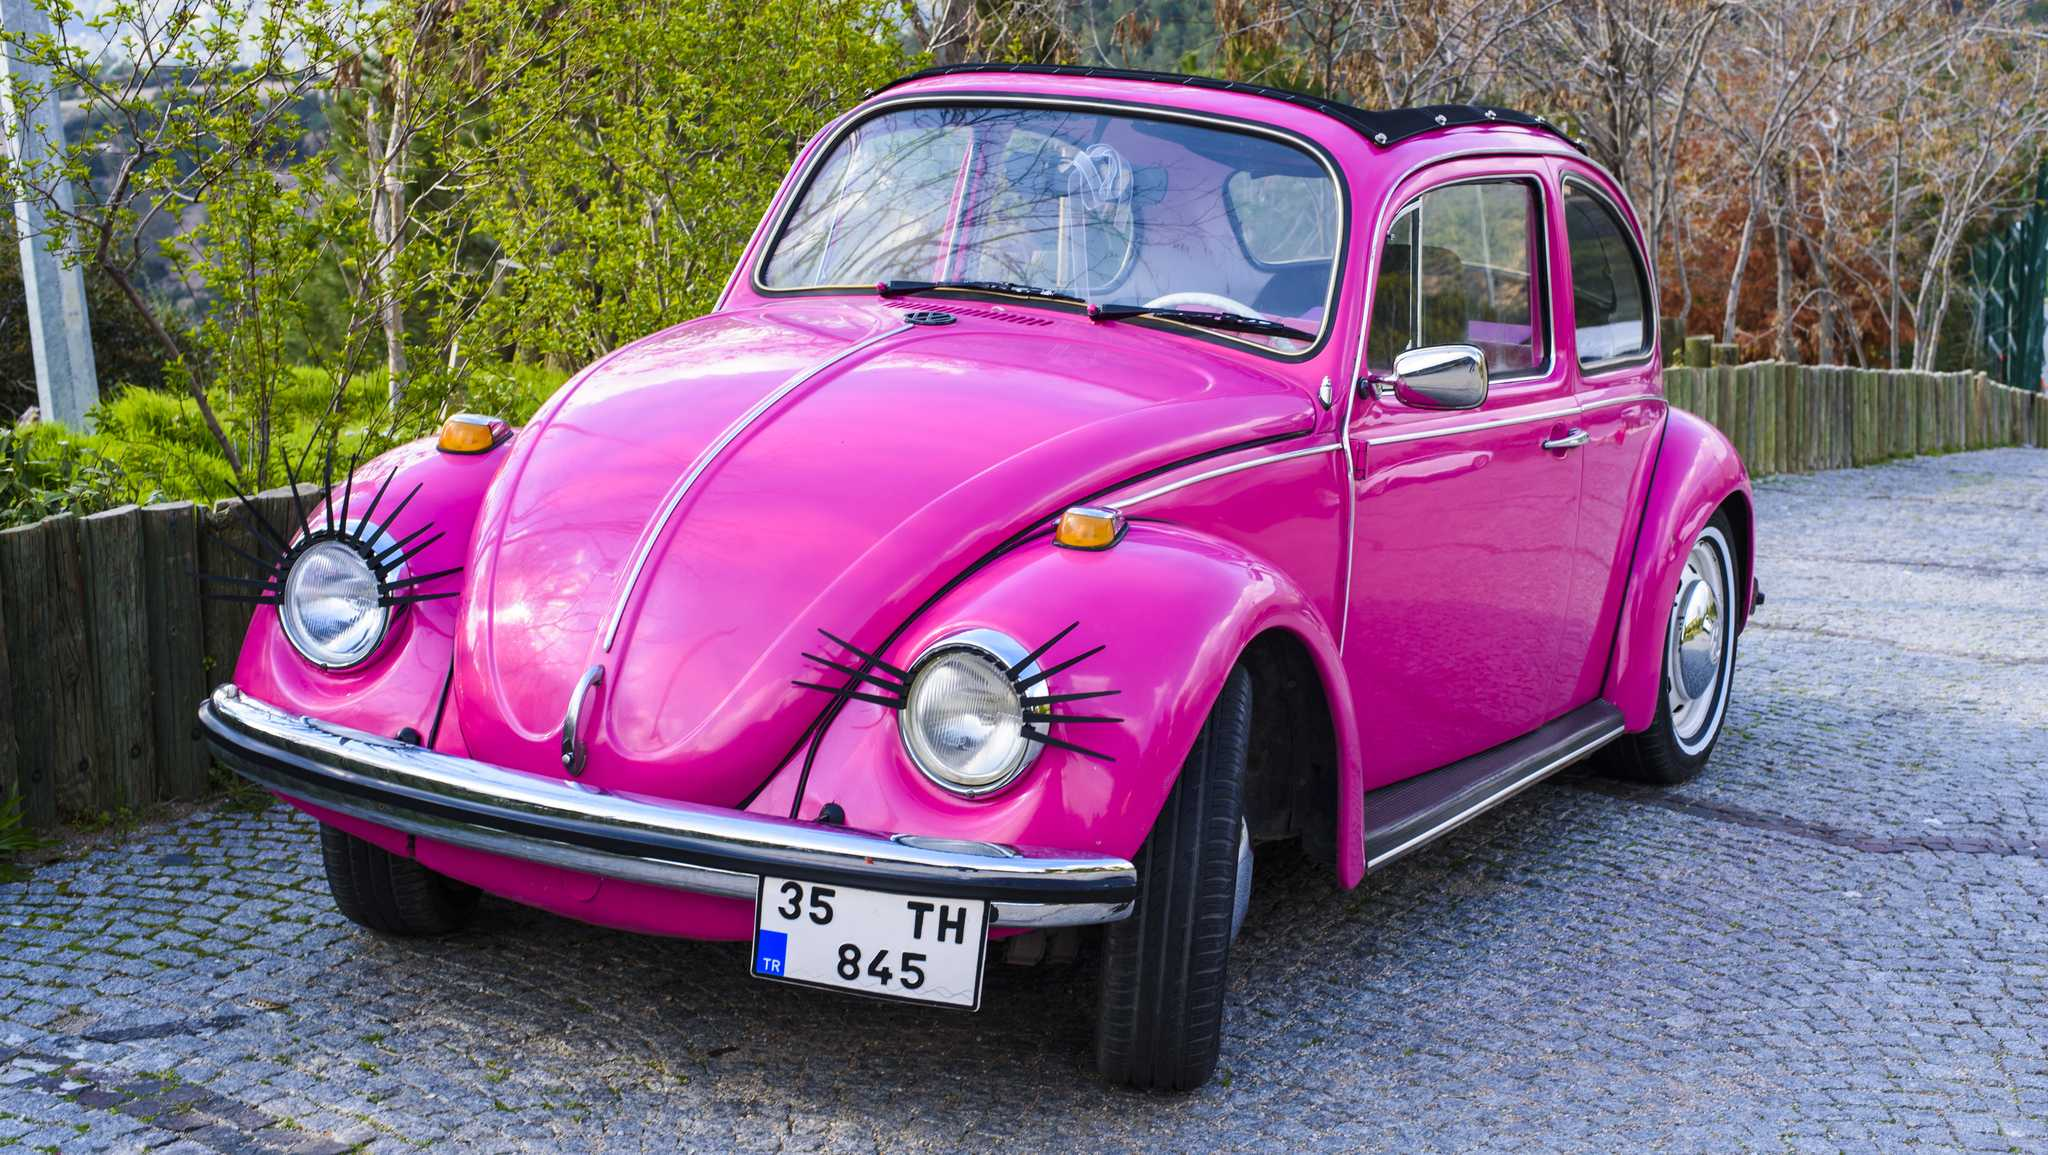 Izmir, Turkey, March 16, 2016: Old fashioned car parked next to the garden in Izmir. The Volkswagen Type 1, widely known as the Volkswagen Beetle, was an economy car produced by the German auto maker Volkswagen (VW) from 1938 until 2003